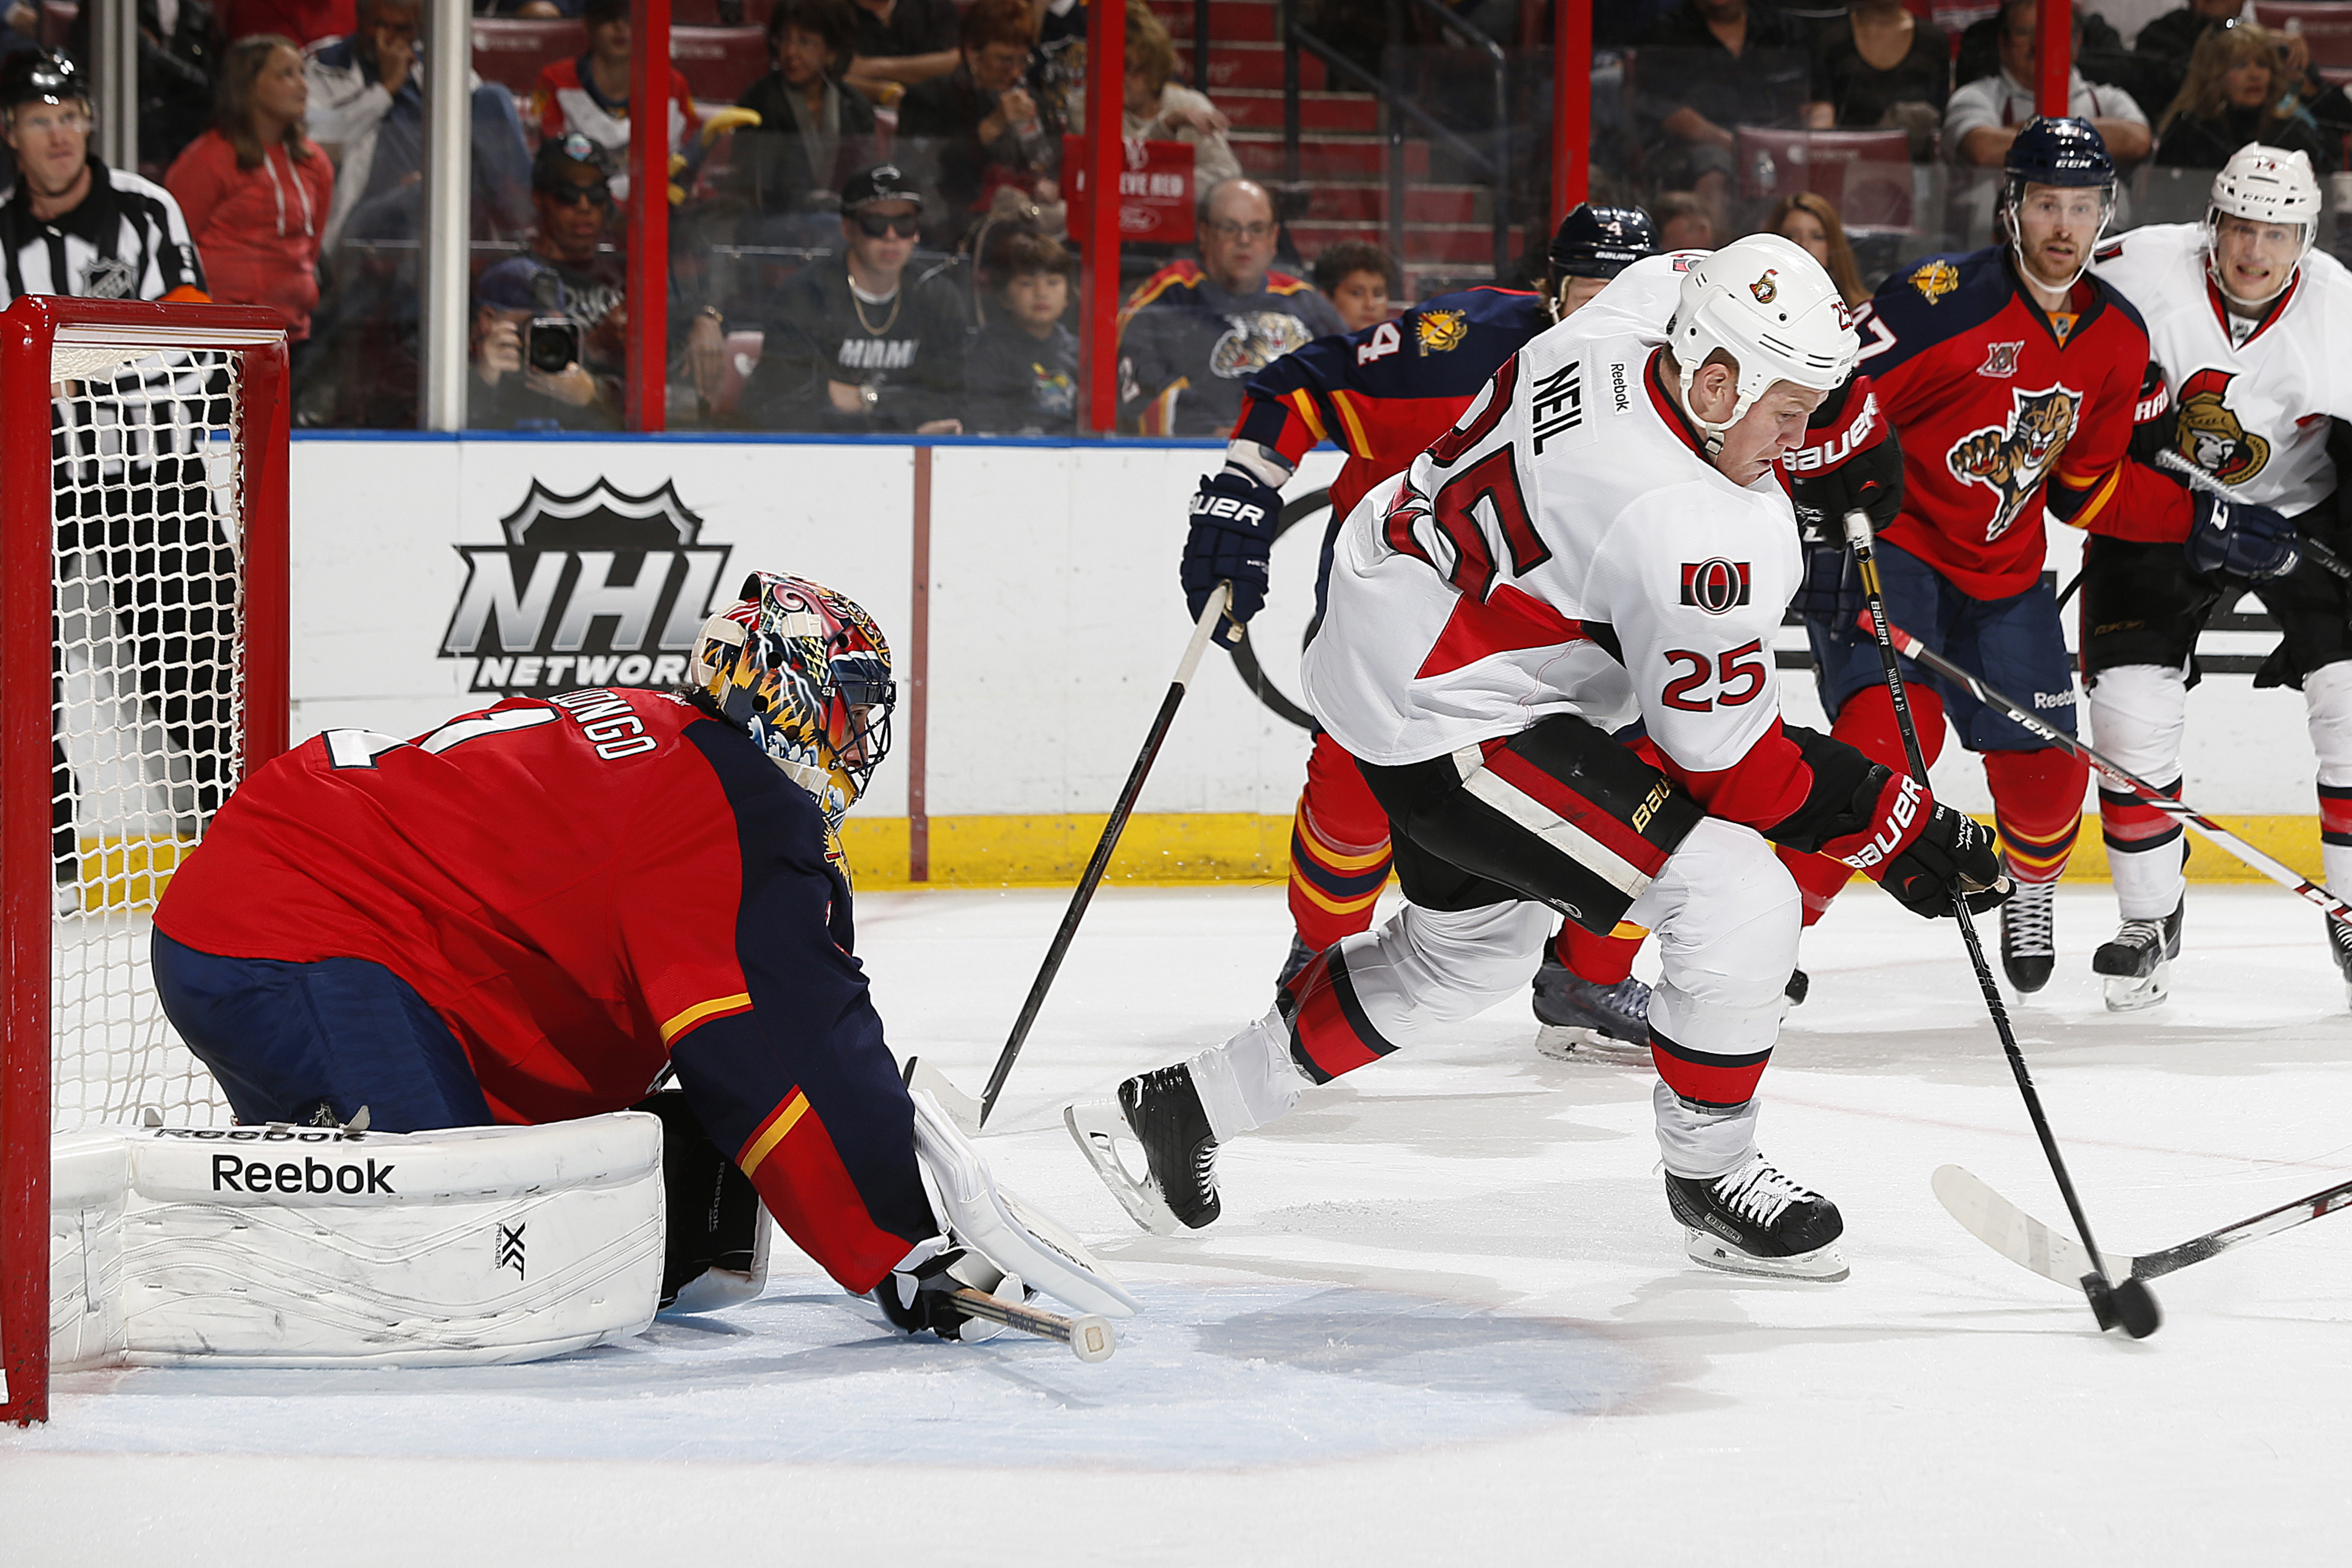 Chris Neil fires a puck past Roberto Luongo ... no, not really.